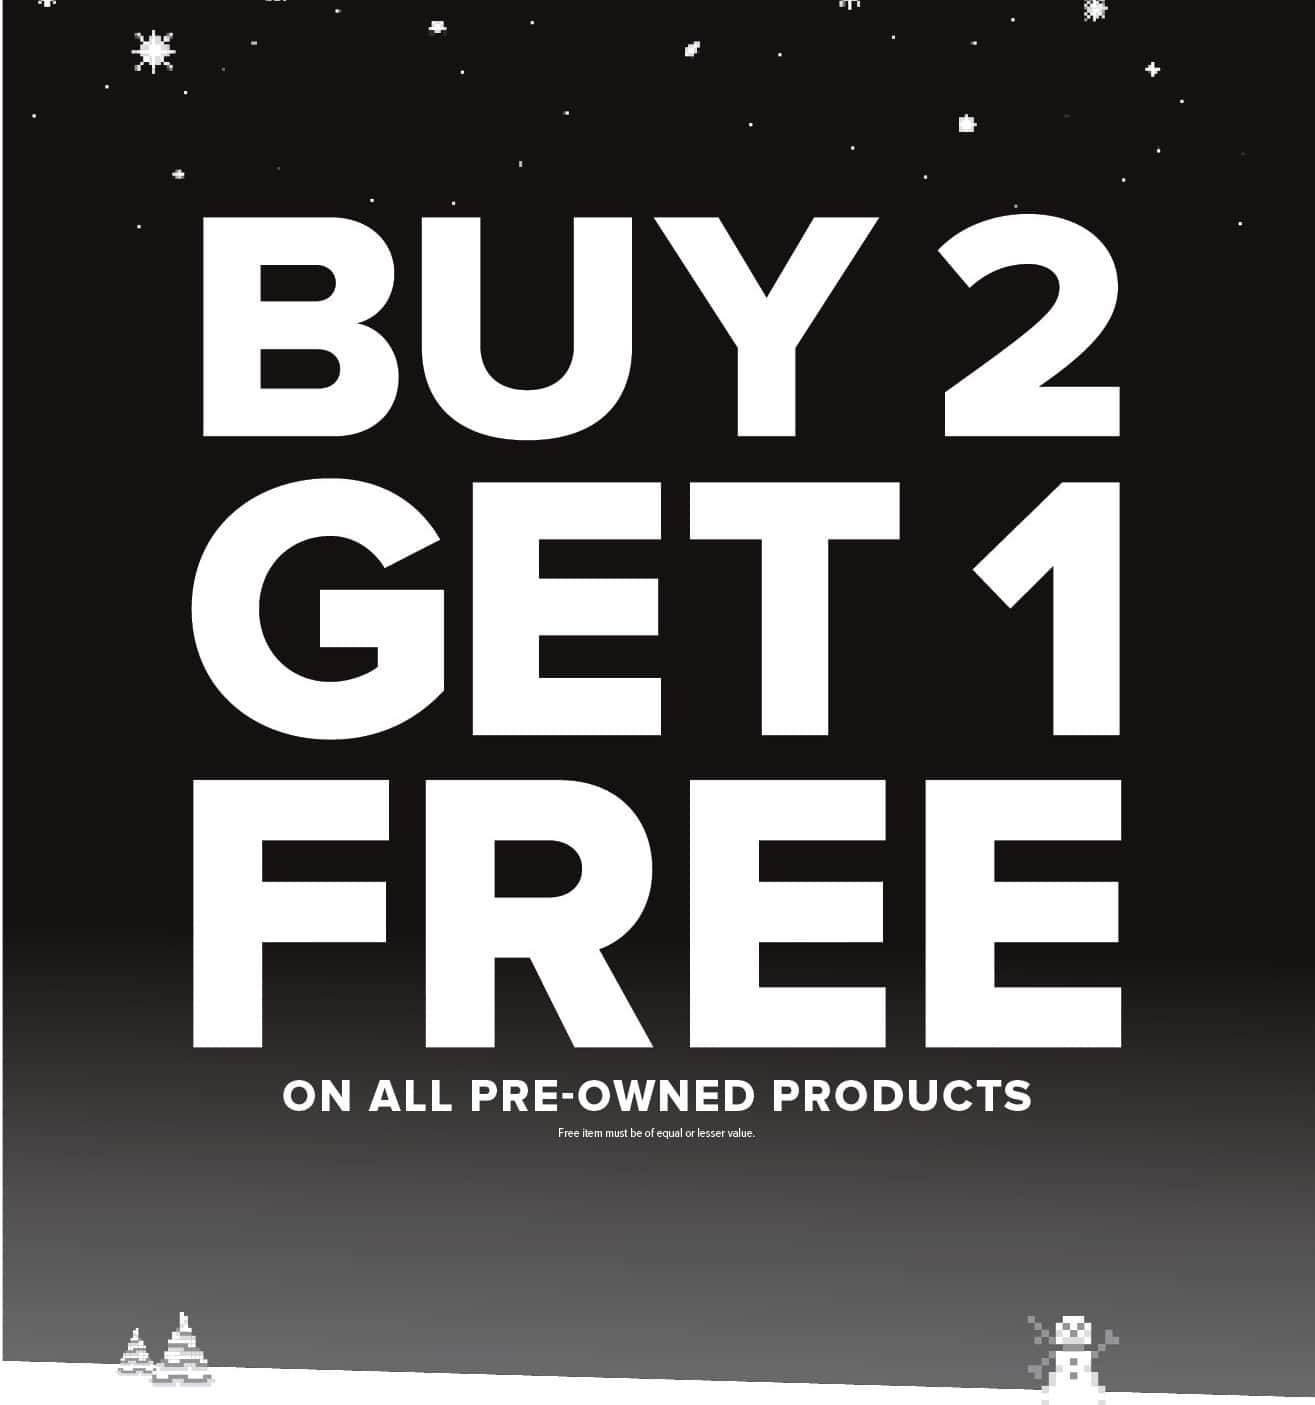 GameStop Black Friday: All Pre-Owned Products - B2G3rd Free